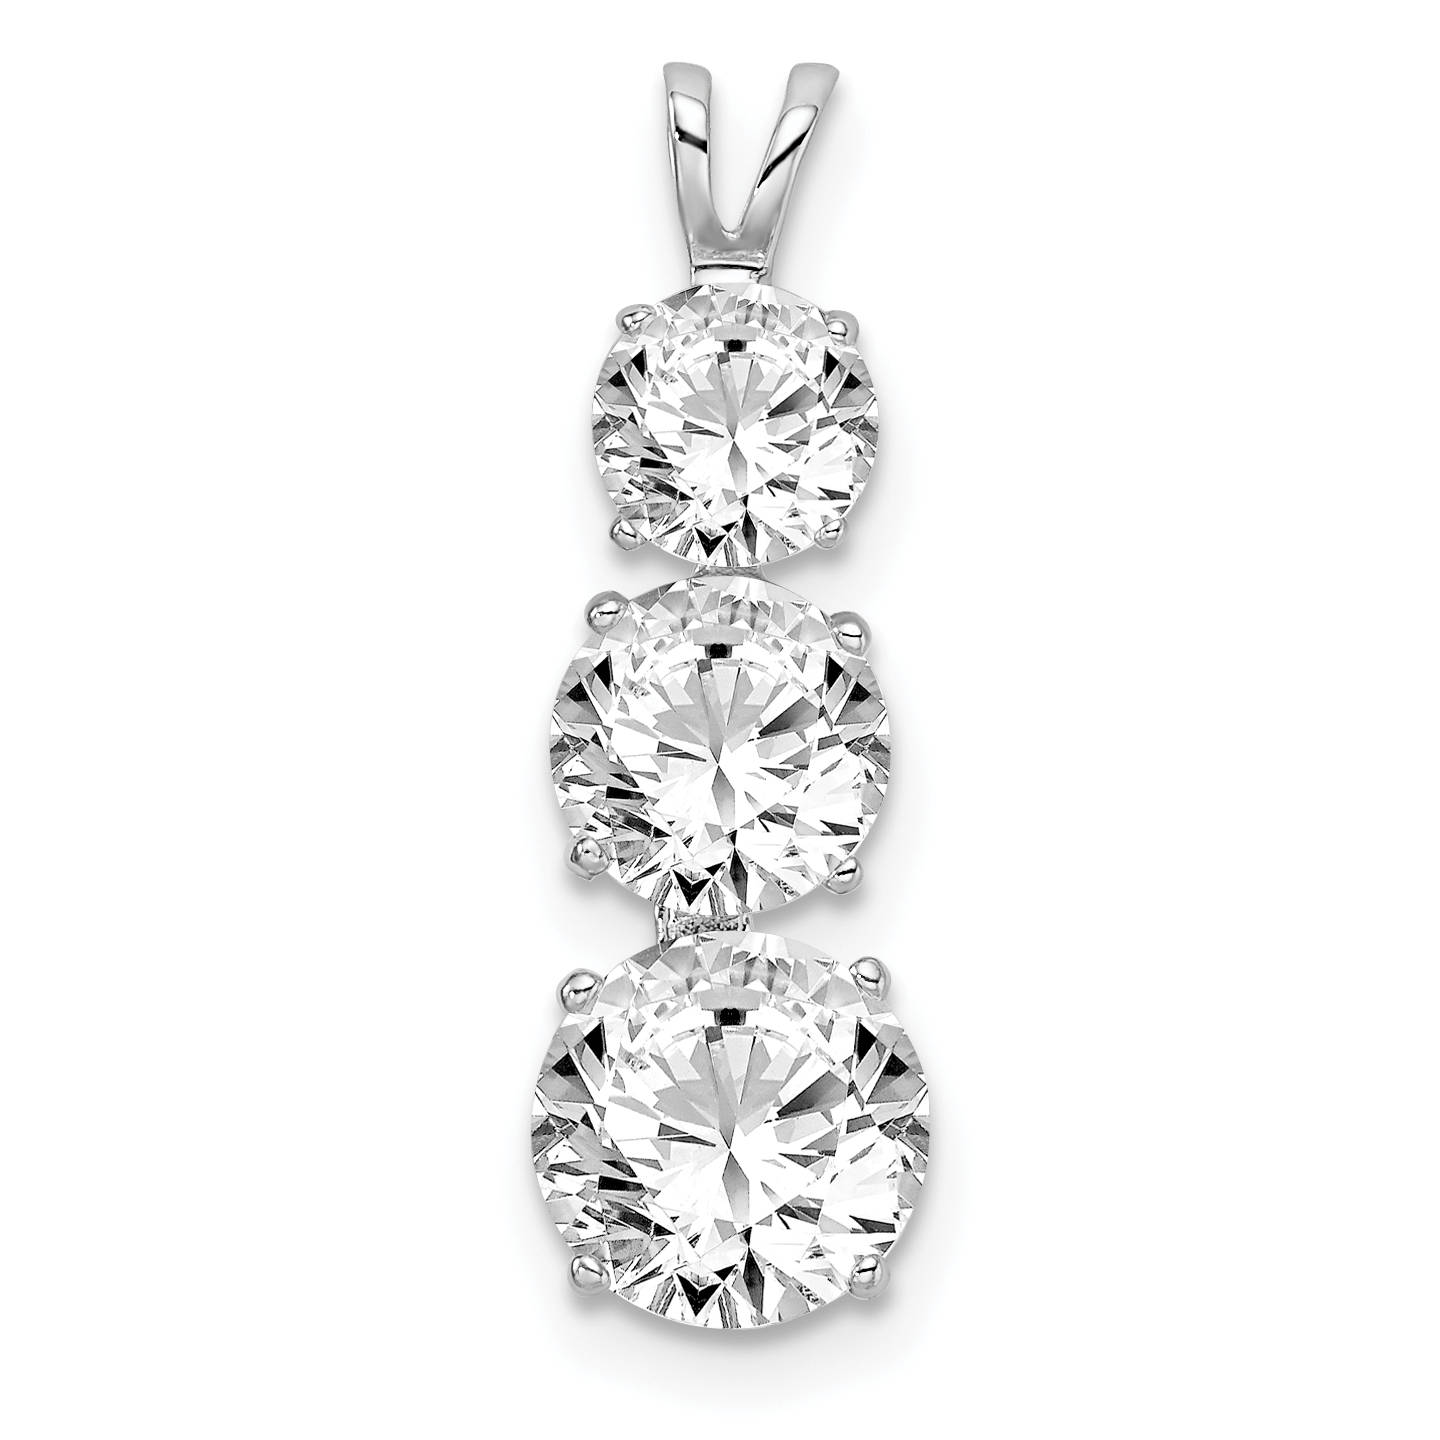 925 Sterling Silver Cubic Zirconia Cz Slide Necklace Pendant Charm Fine Jewelry Gifts For Women For Her